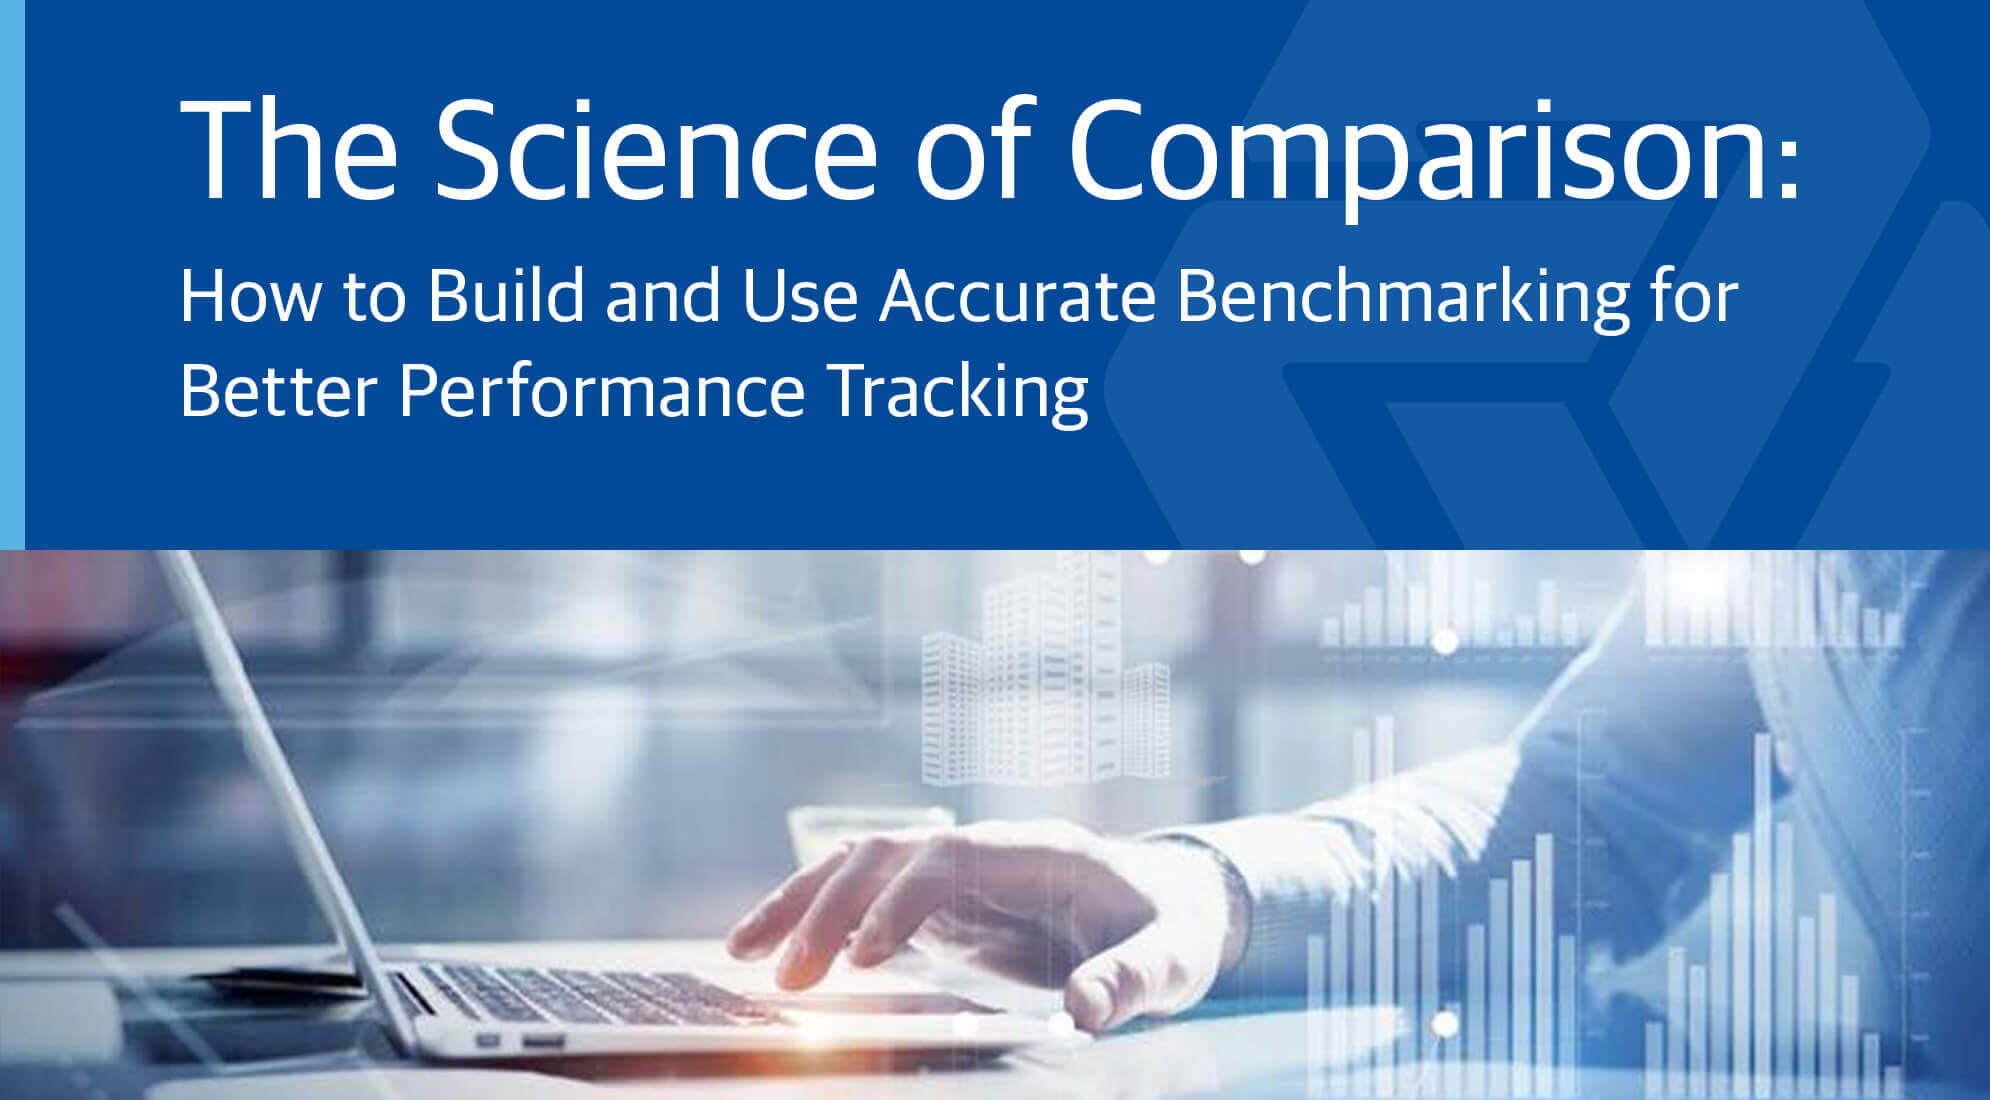 The Science of Comparison: How to Build and Use Accurate Benchmarking for Better Performance Tracking